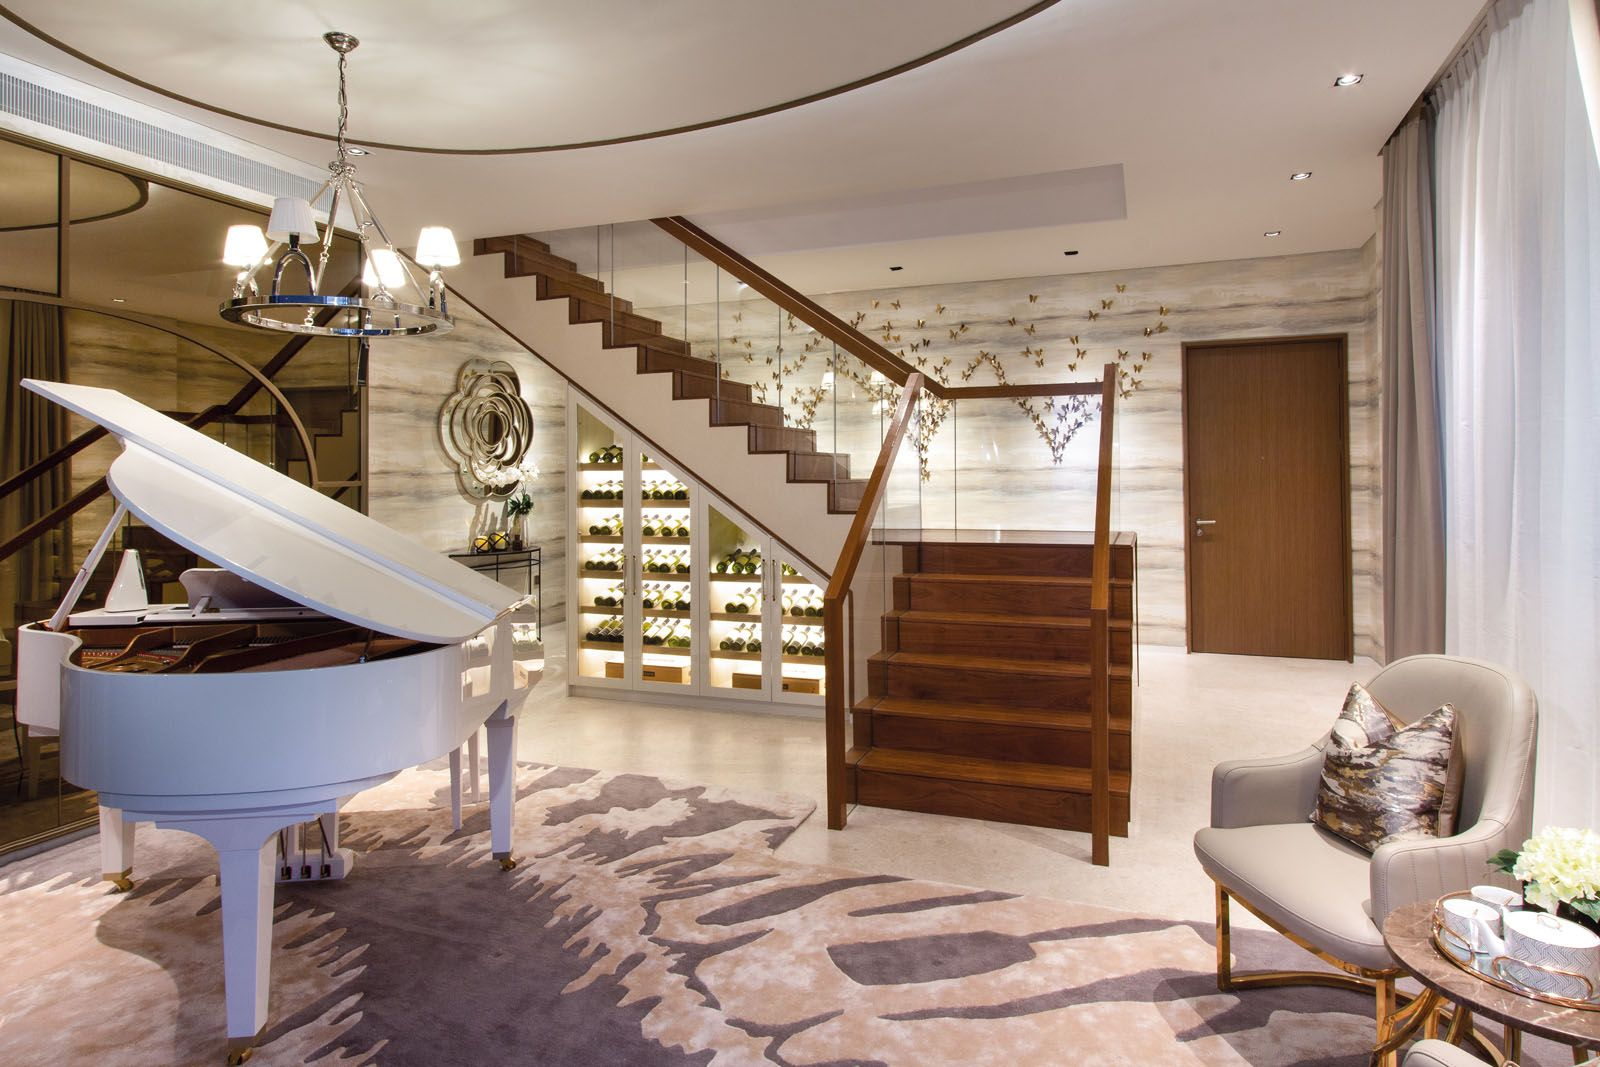 SuMisura installed illuminated shelves under the grand staircase to maximise the use of space in the lounge area